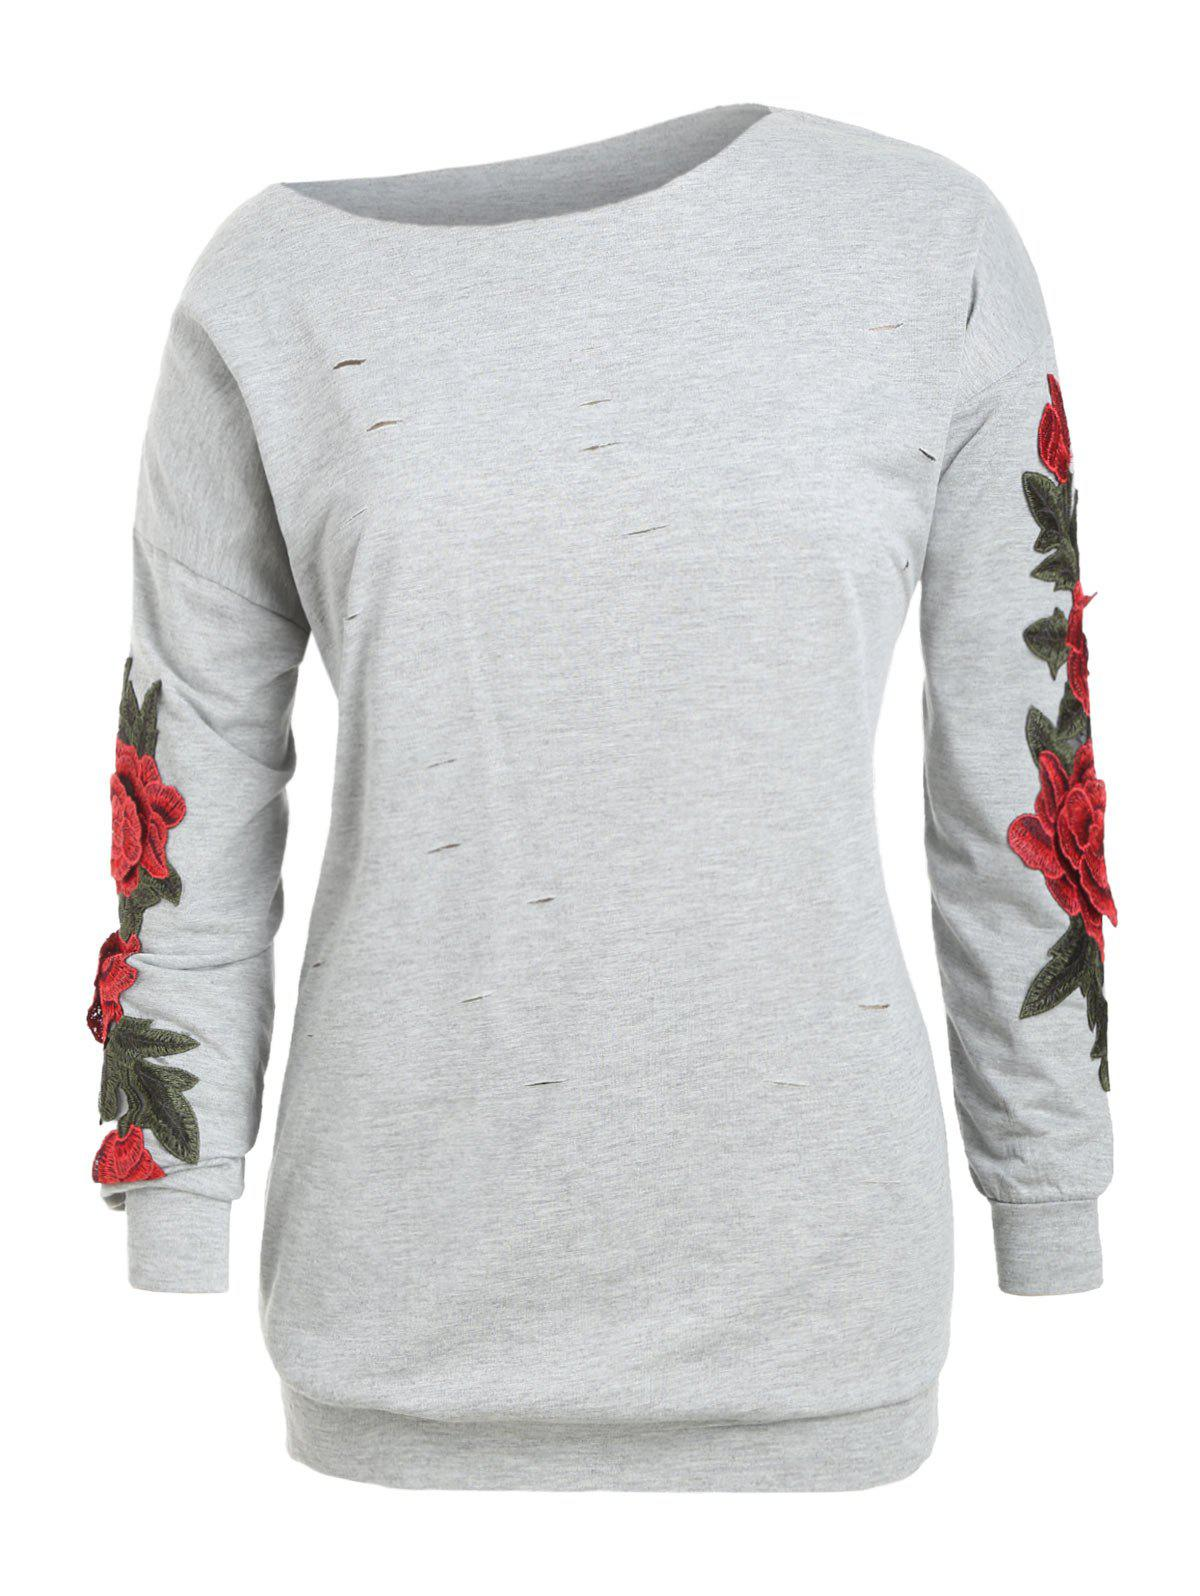 Fancy Plus Size Ripped Skew Neck Applique Sweatshirt